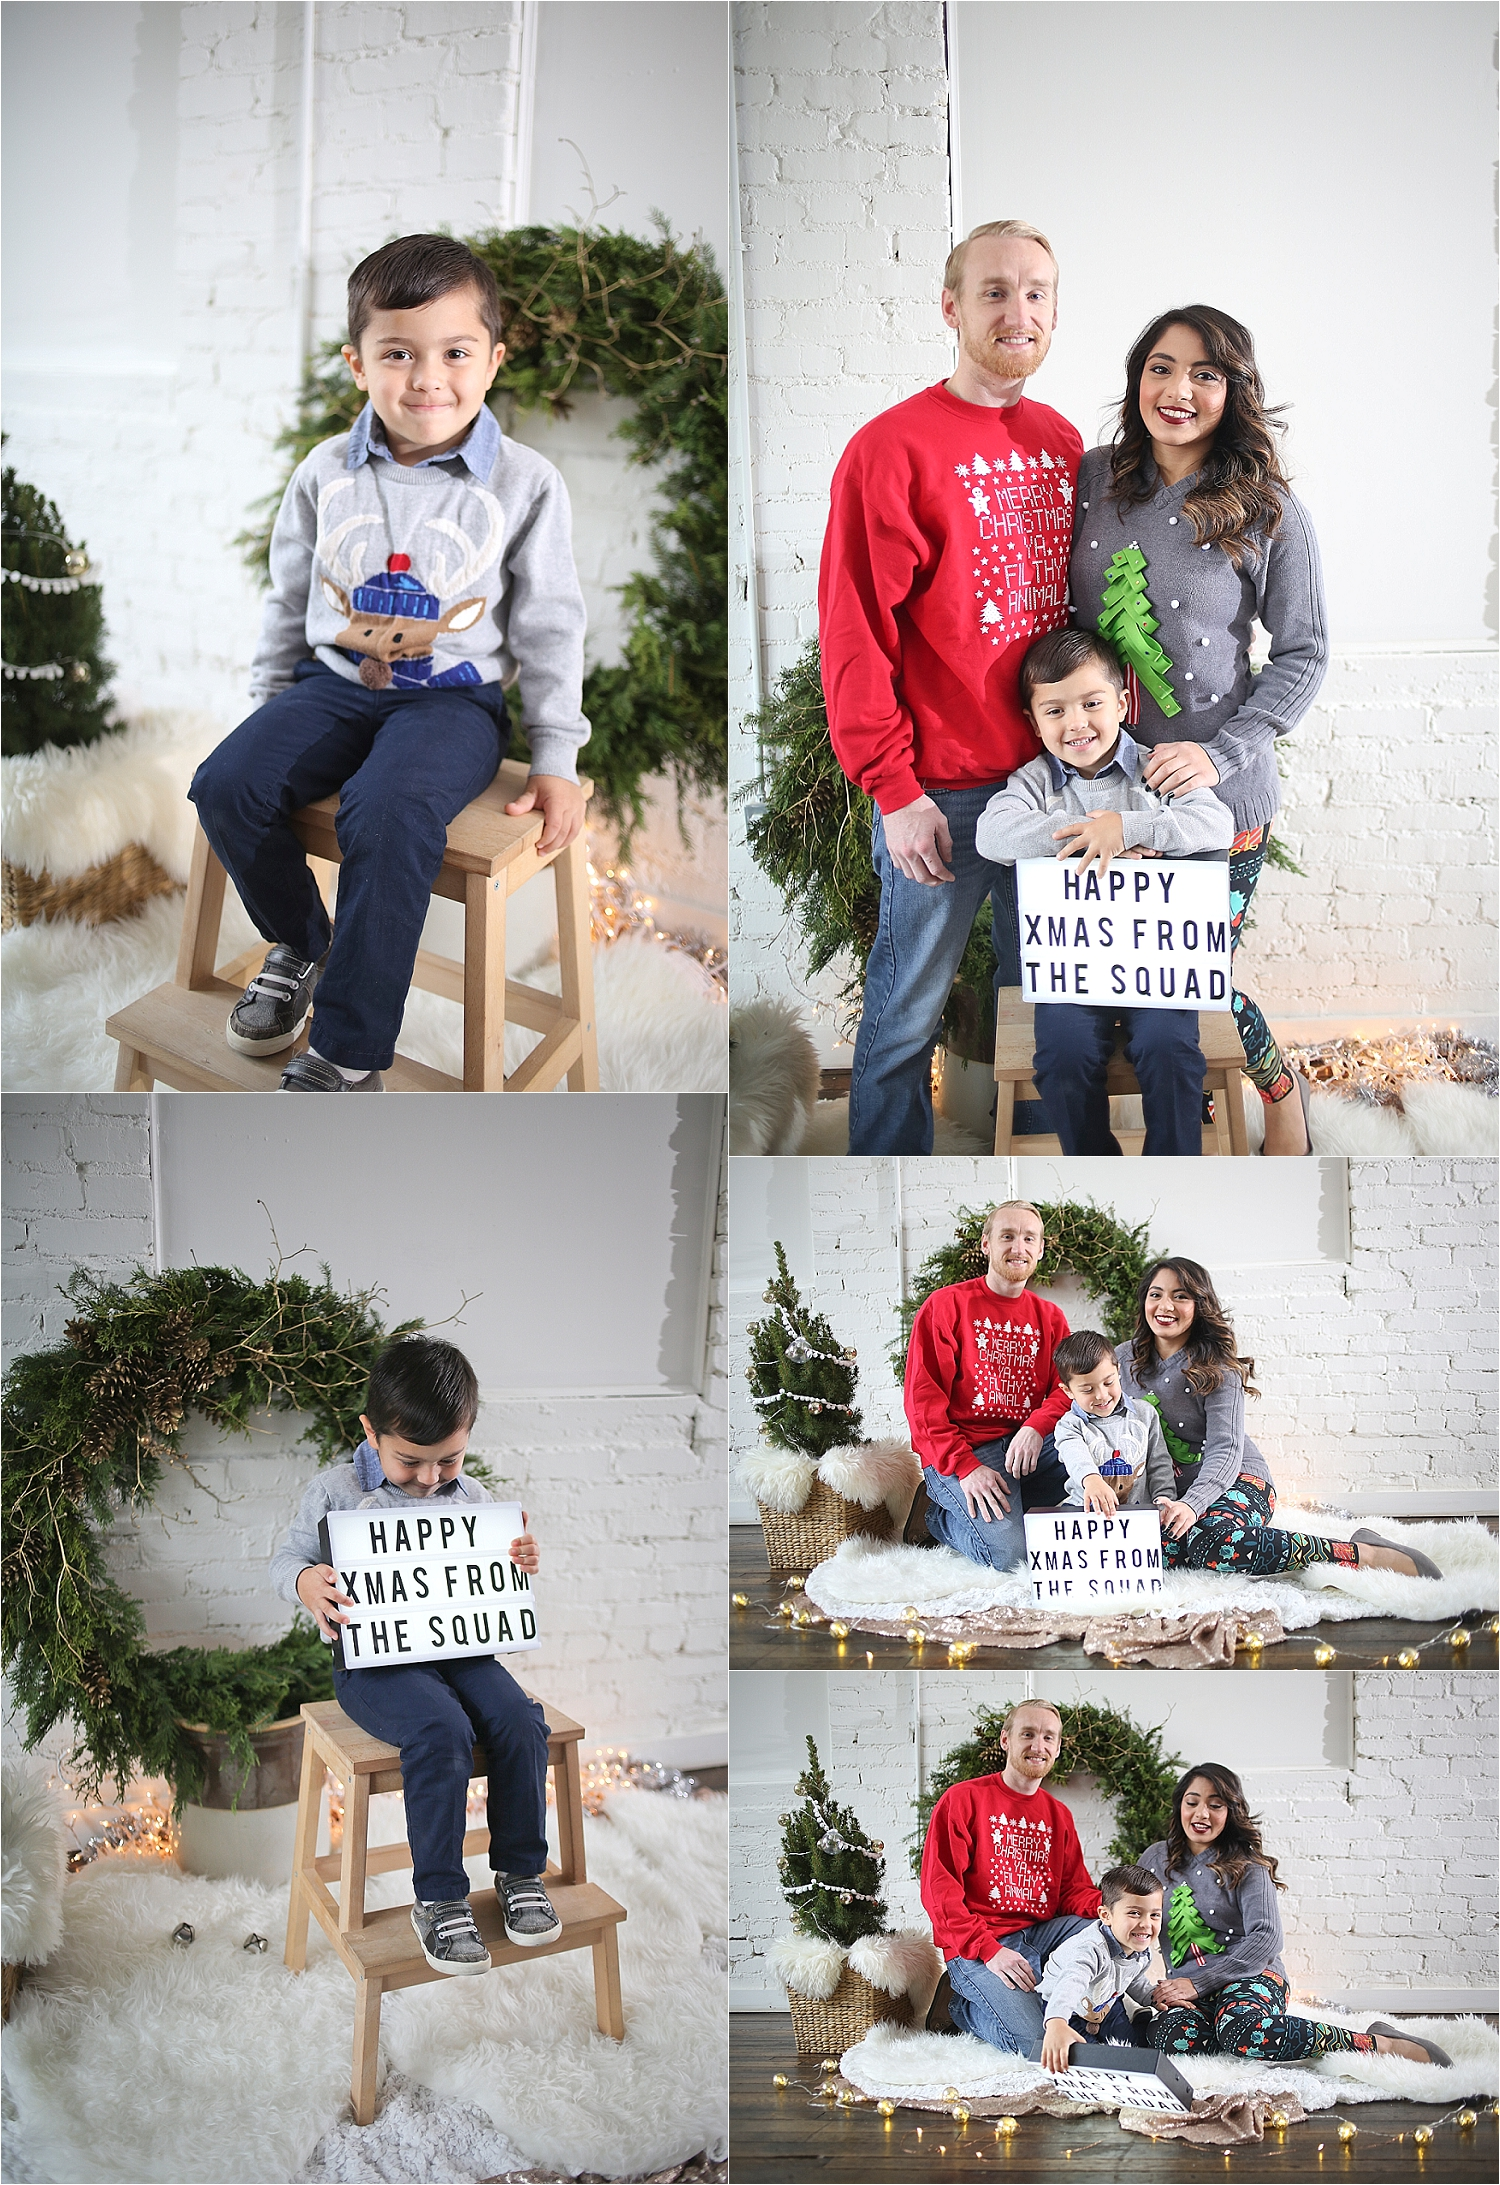 Blacksburg-Family-Photographer-Christmas-Photos_0008.jpg